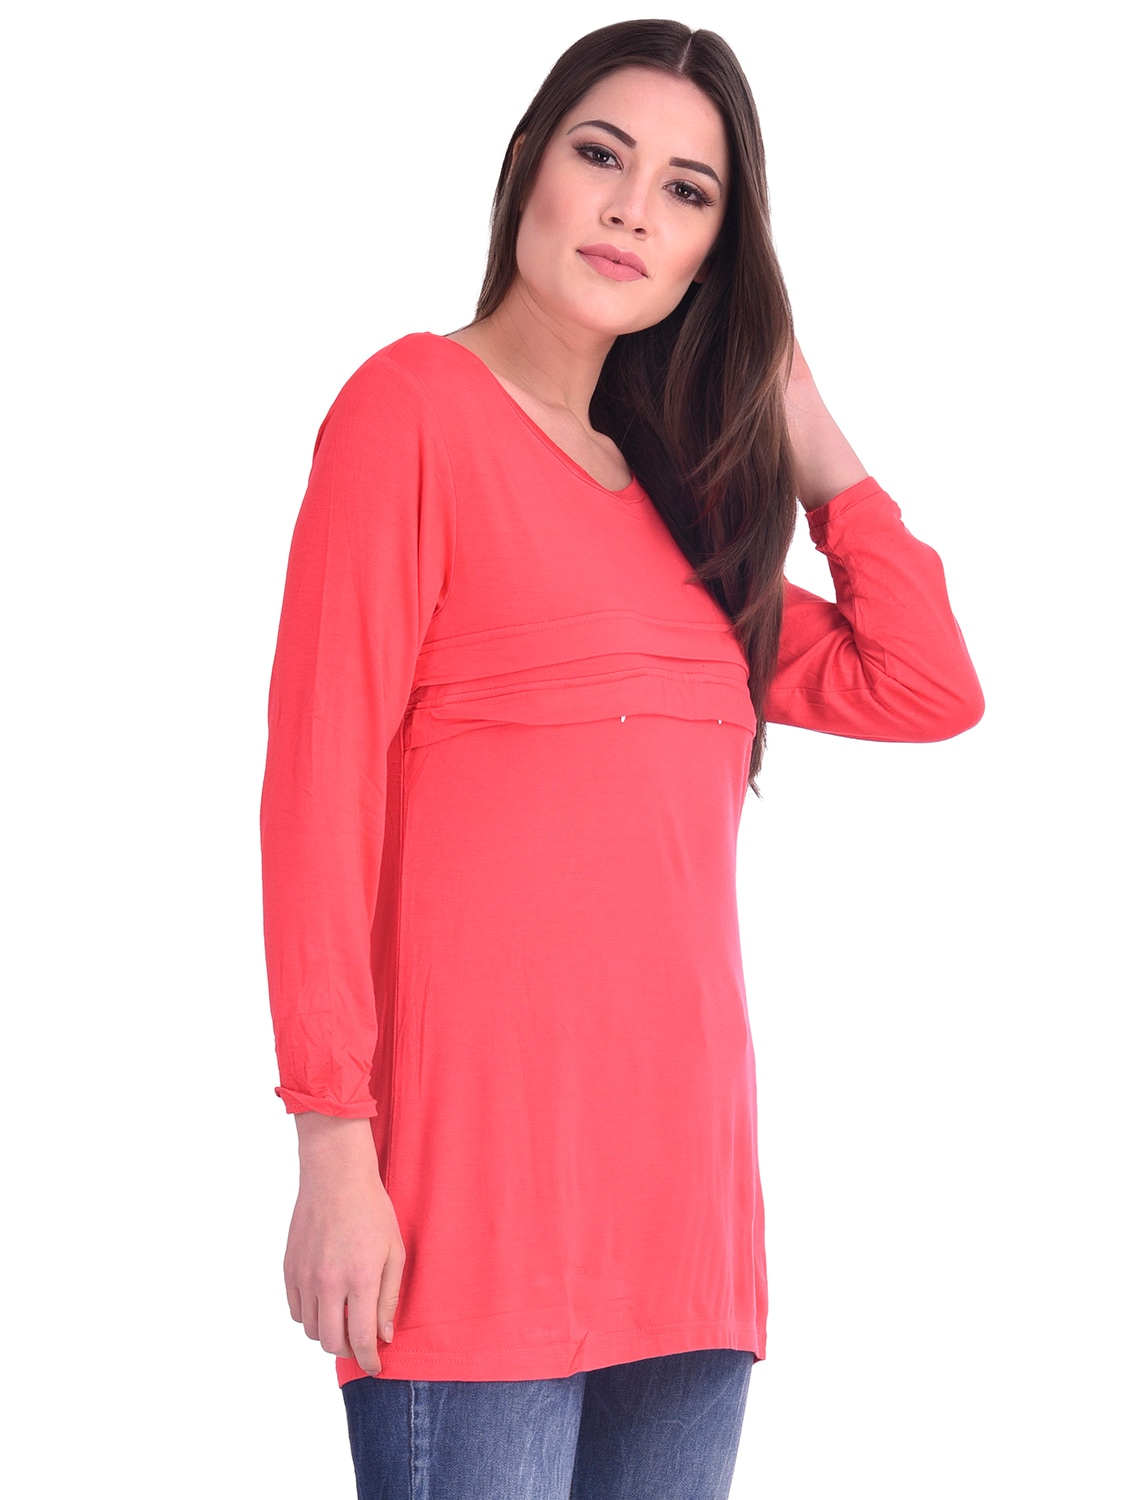 1c0fb7e9d98 Buy Long Sleeved A-line Tunic for Women from Dear Darling for ₹387 at 52%  off | 2019 Limeroad.com